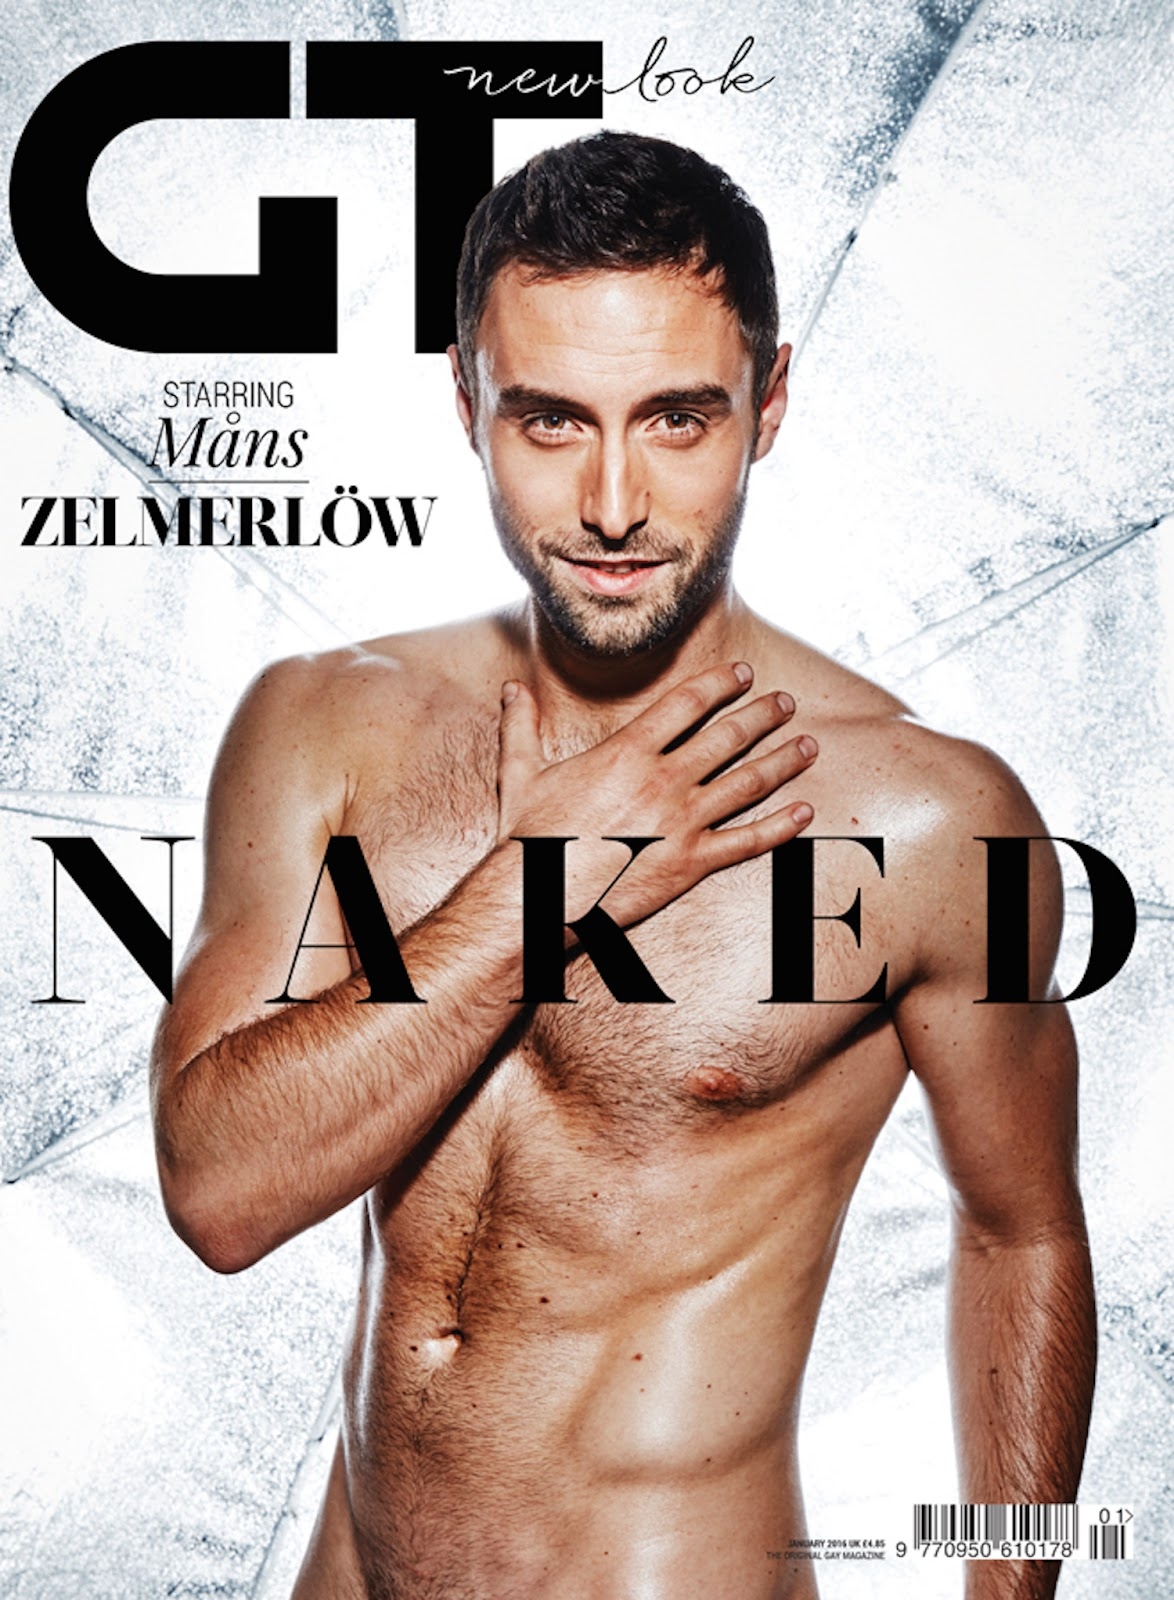 Eurovision 2016 - Mans Zelmerlow shocks viewers by